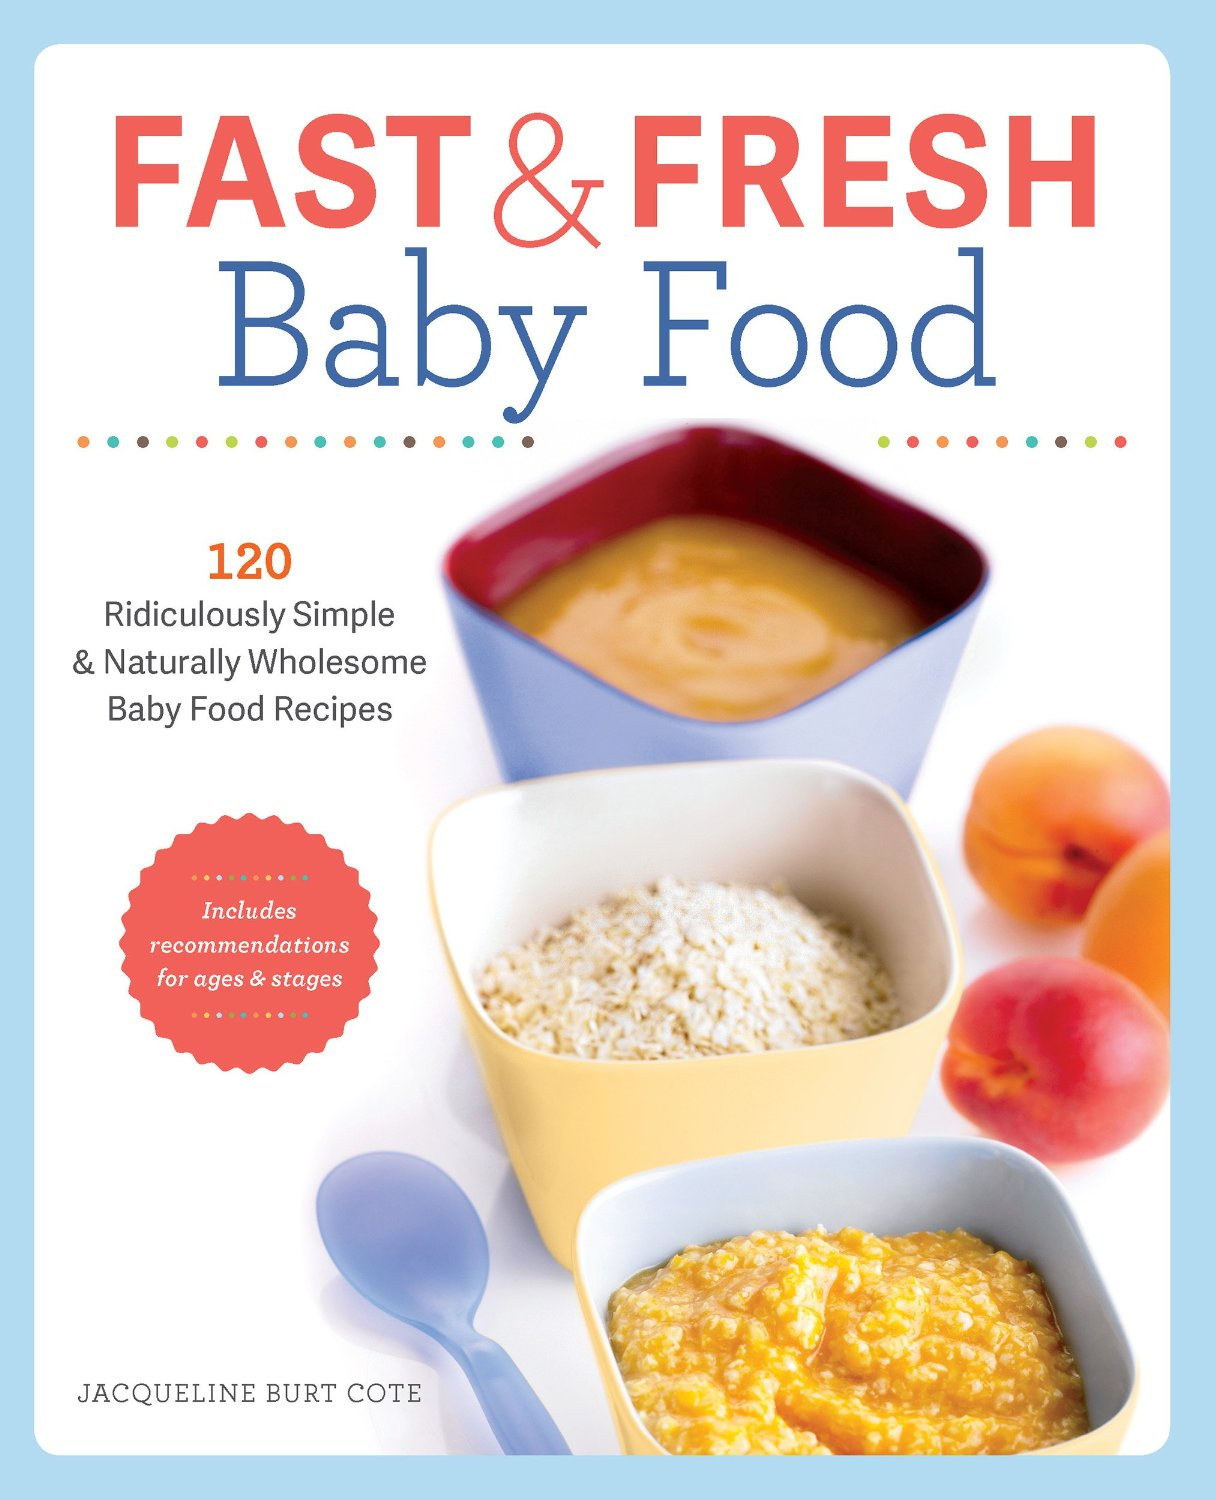 Fast & Fresh Baby Food Cookbook: 120 Ridiculously Simple and Naturally Wholesome Baby Food Recipes free download